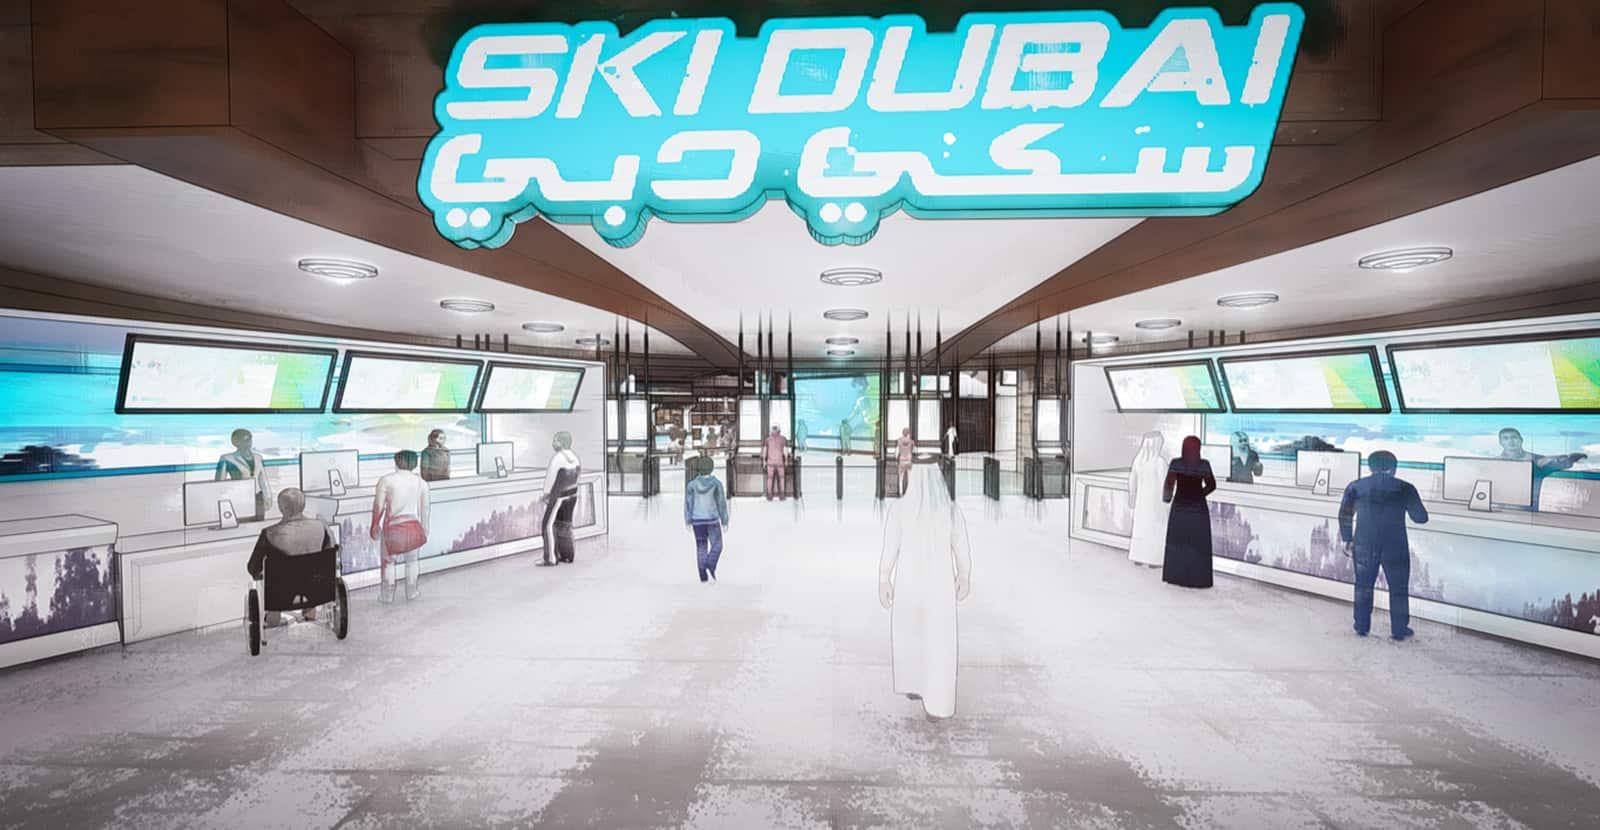 ski dubai elevate customer experience by engine